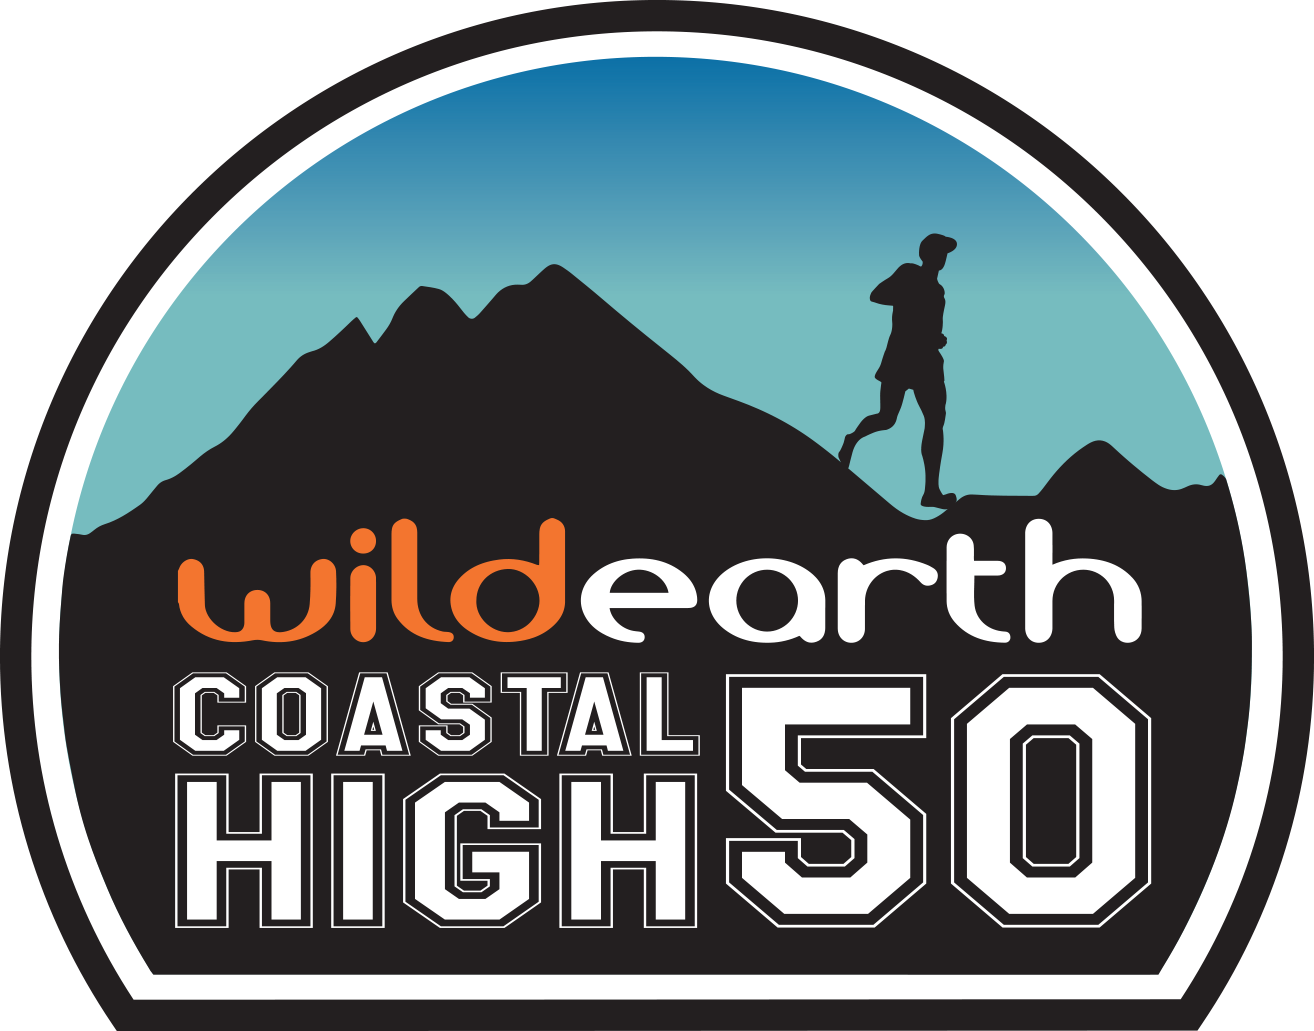 Wild Earth Coastal High 50